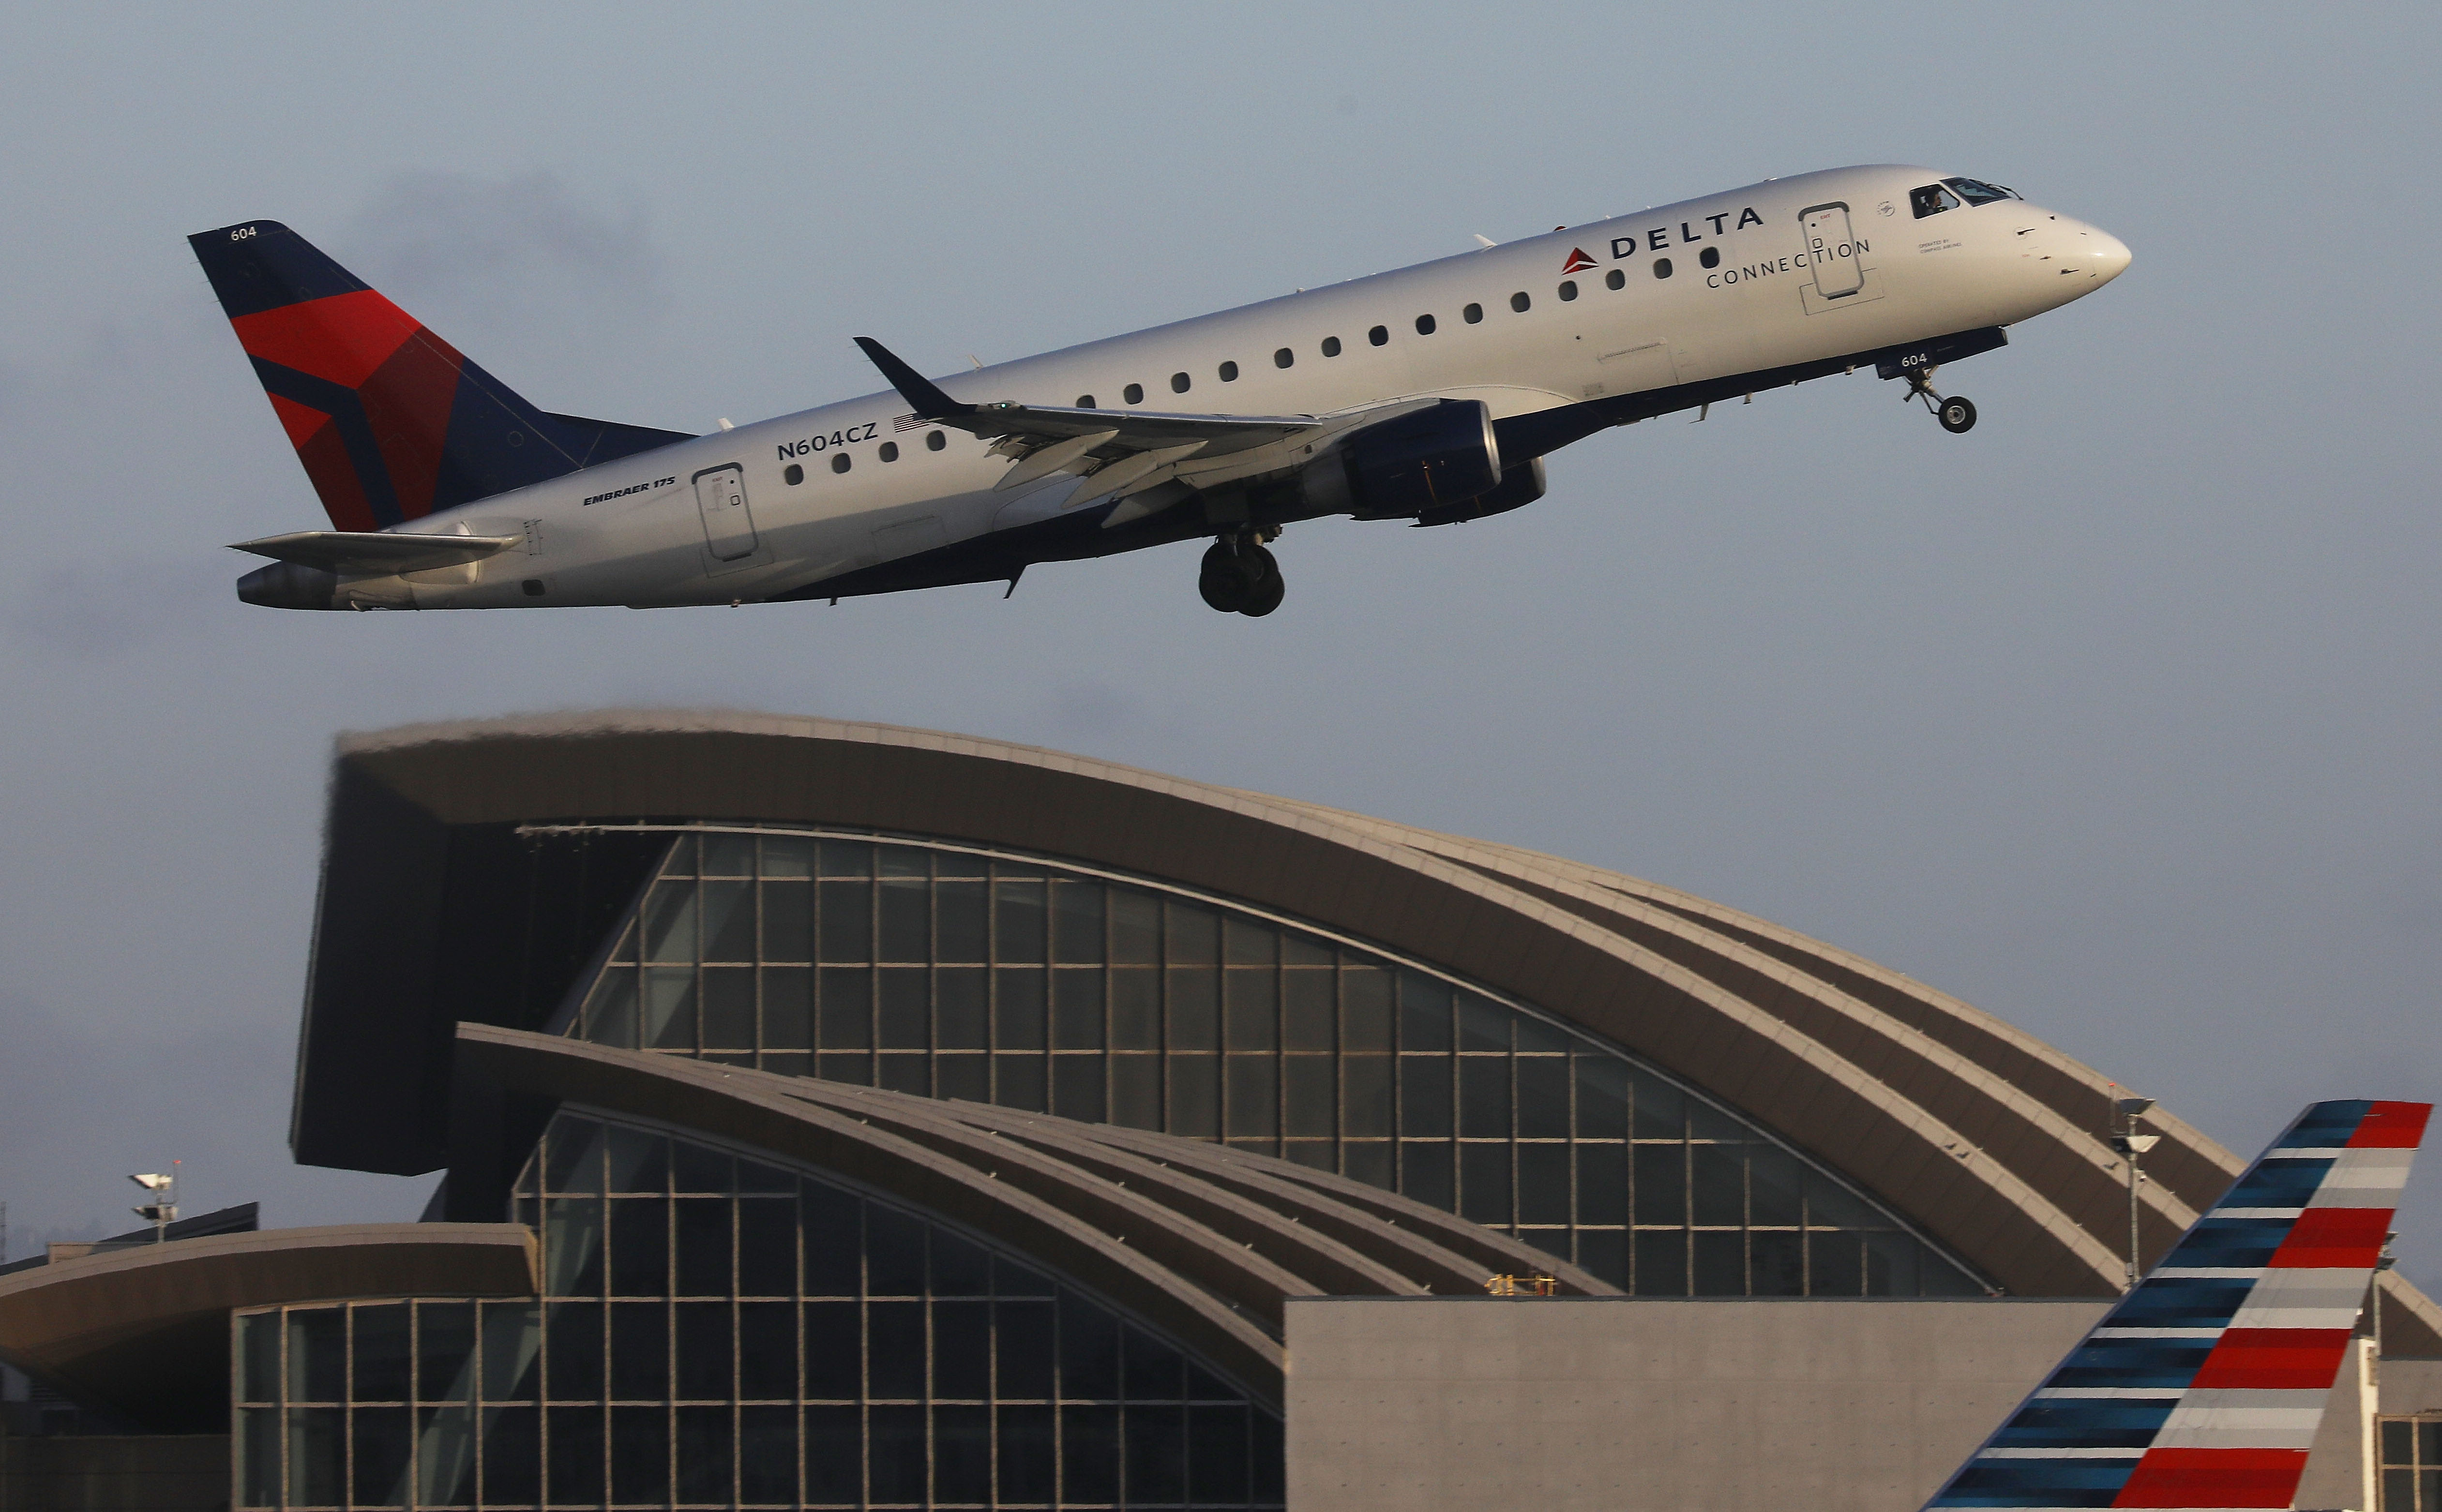 A Delta aircraft taking off from the Los Angeles International Airport | Photo: Getty Images